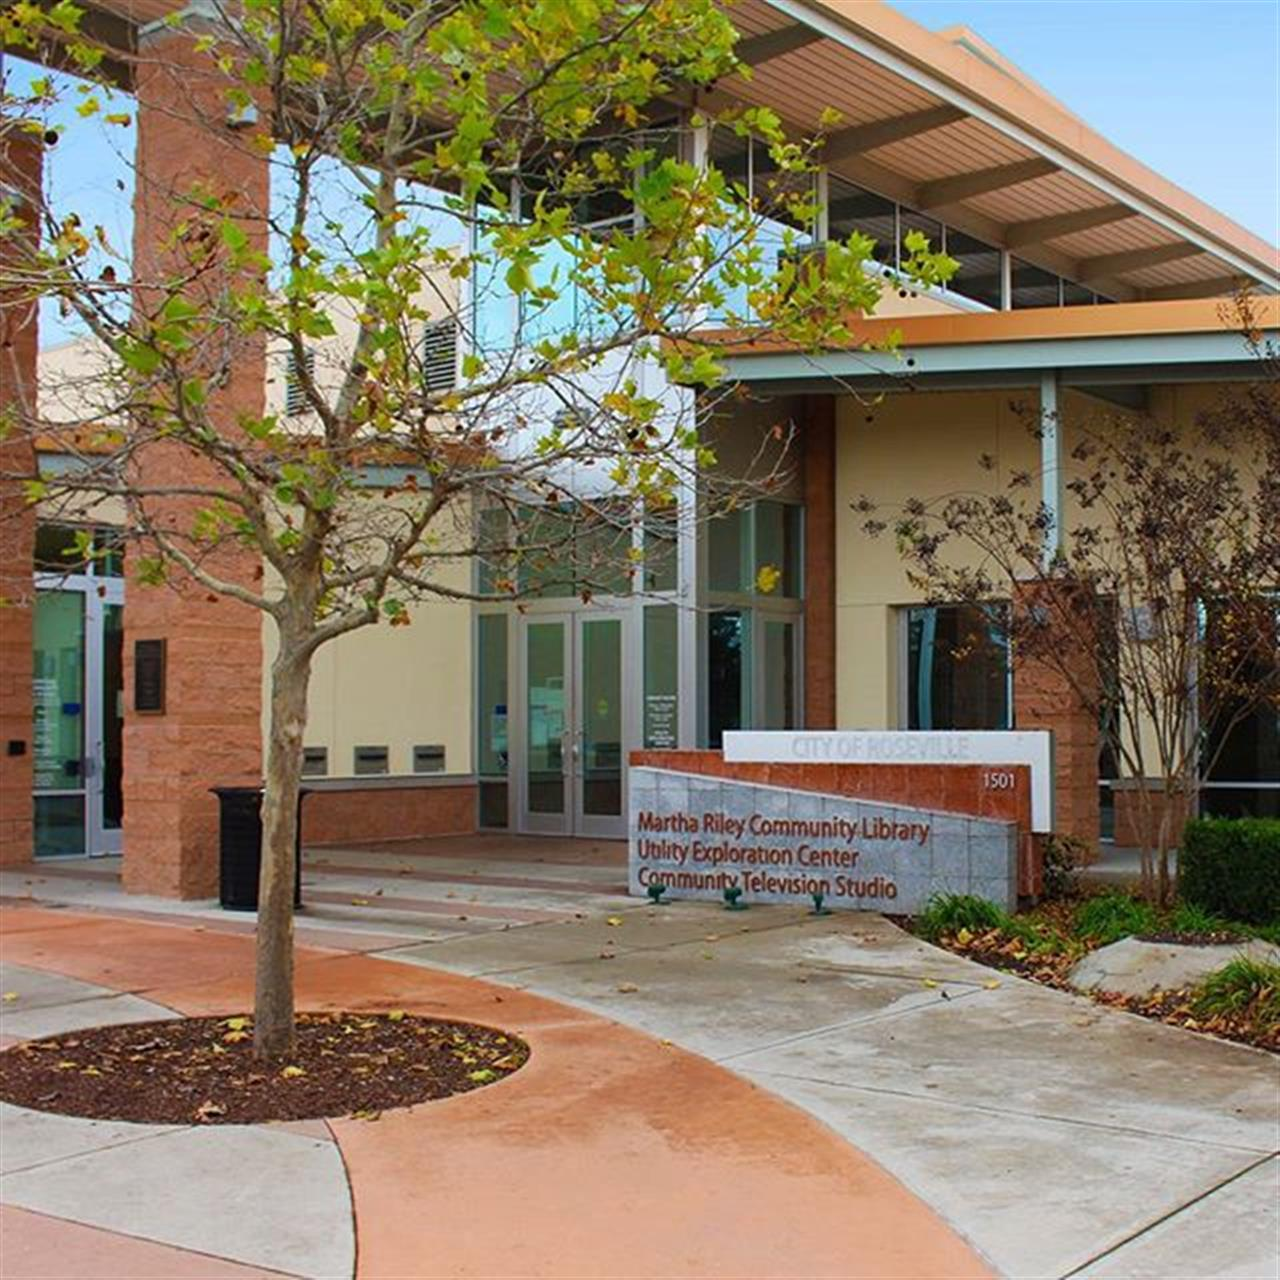 The City of Roseville - Martha Riley Community Library is a great local library for kids and book lovers. This library is located in Mahany Park in Roseville. #lyonrealestate #leadingrelocal #rosevilleca #locallibrary